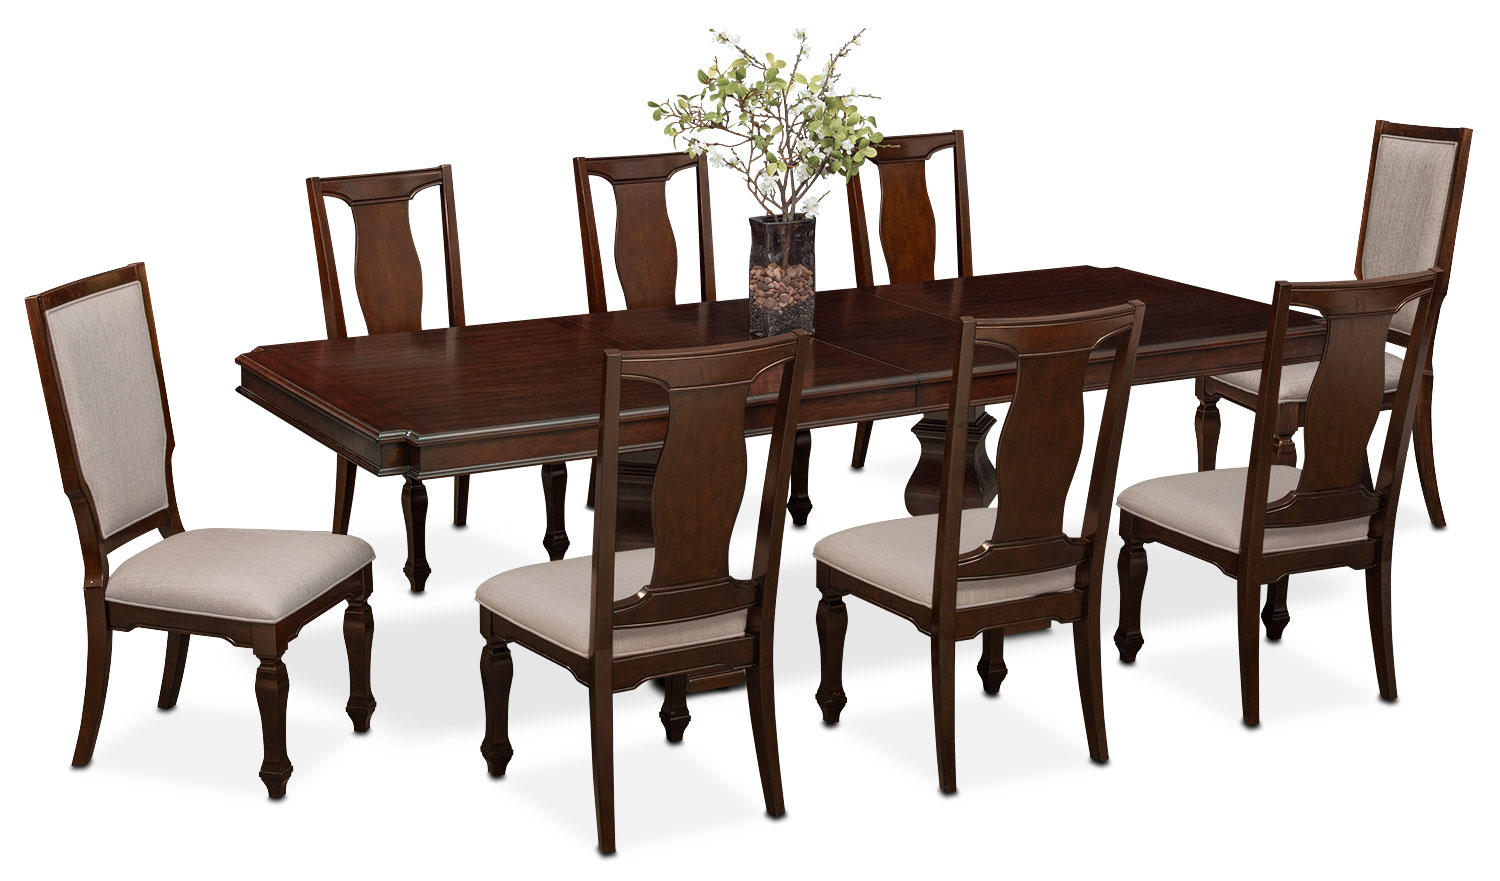 Vienna Dining Table 6 Side Chairs And 2 Upholstered Side